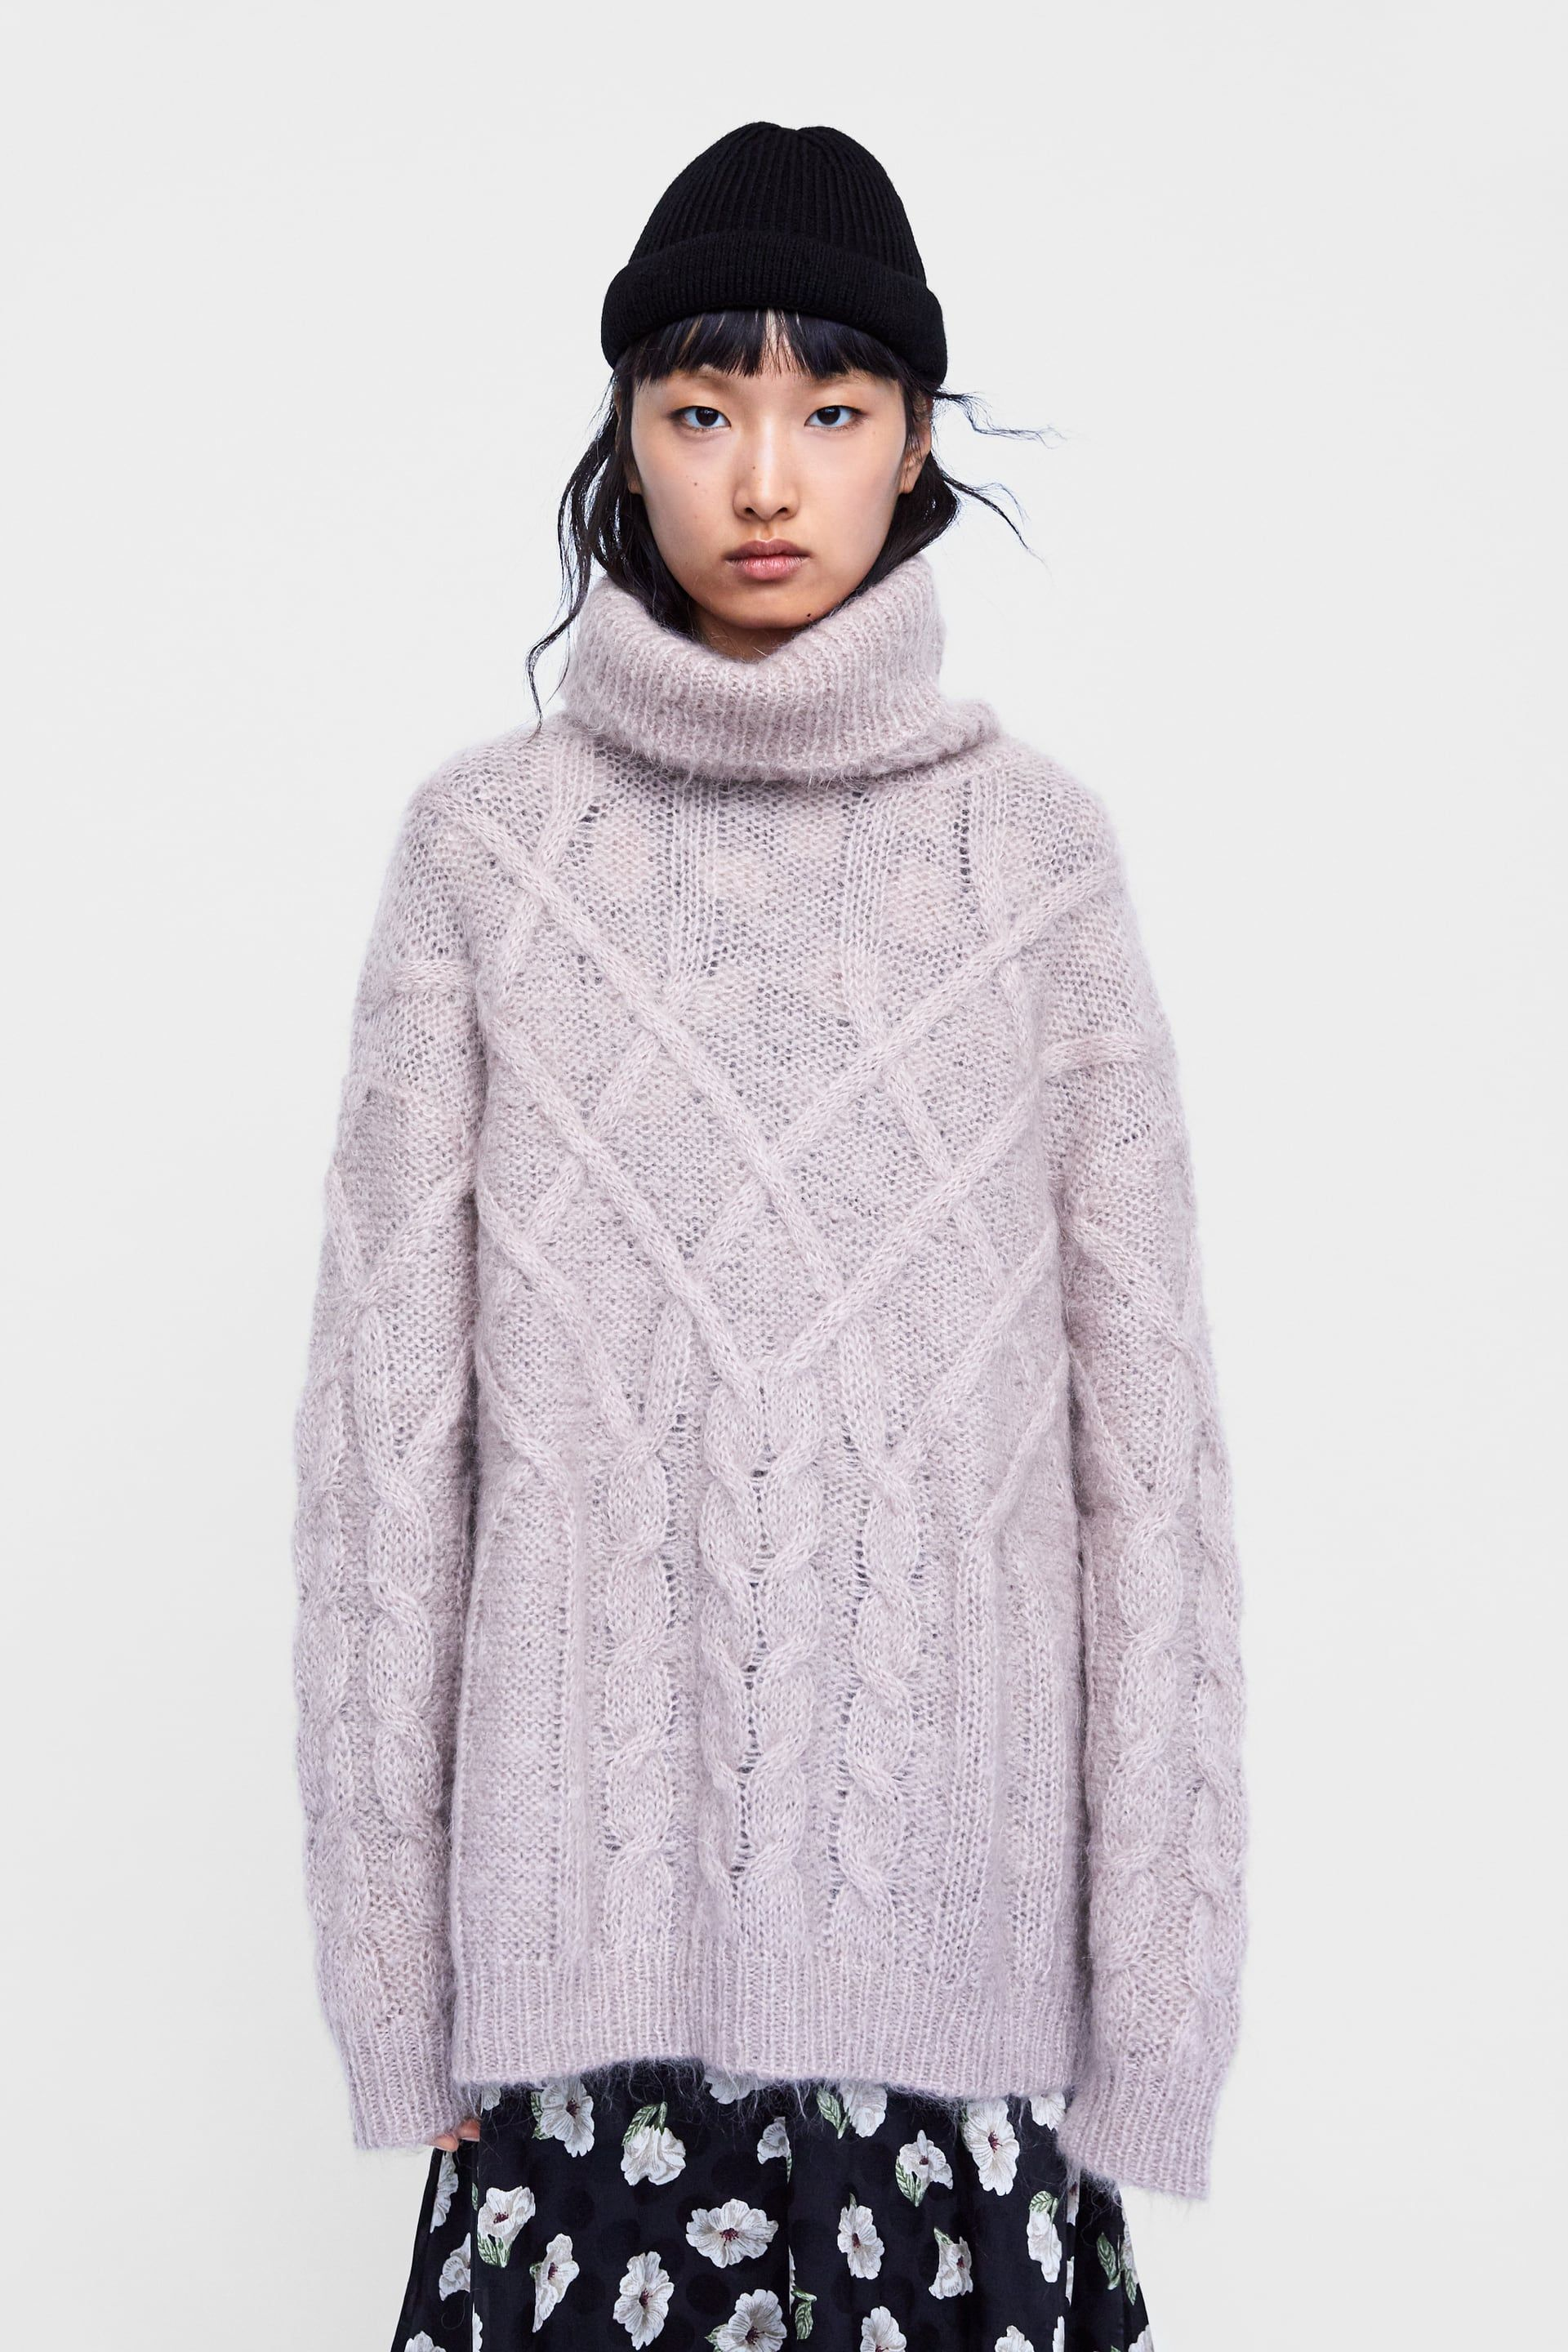 Zara Has Almost 500 Jumpers, But These 17 Are the Best recommend